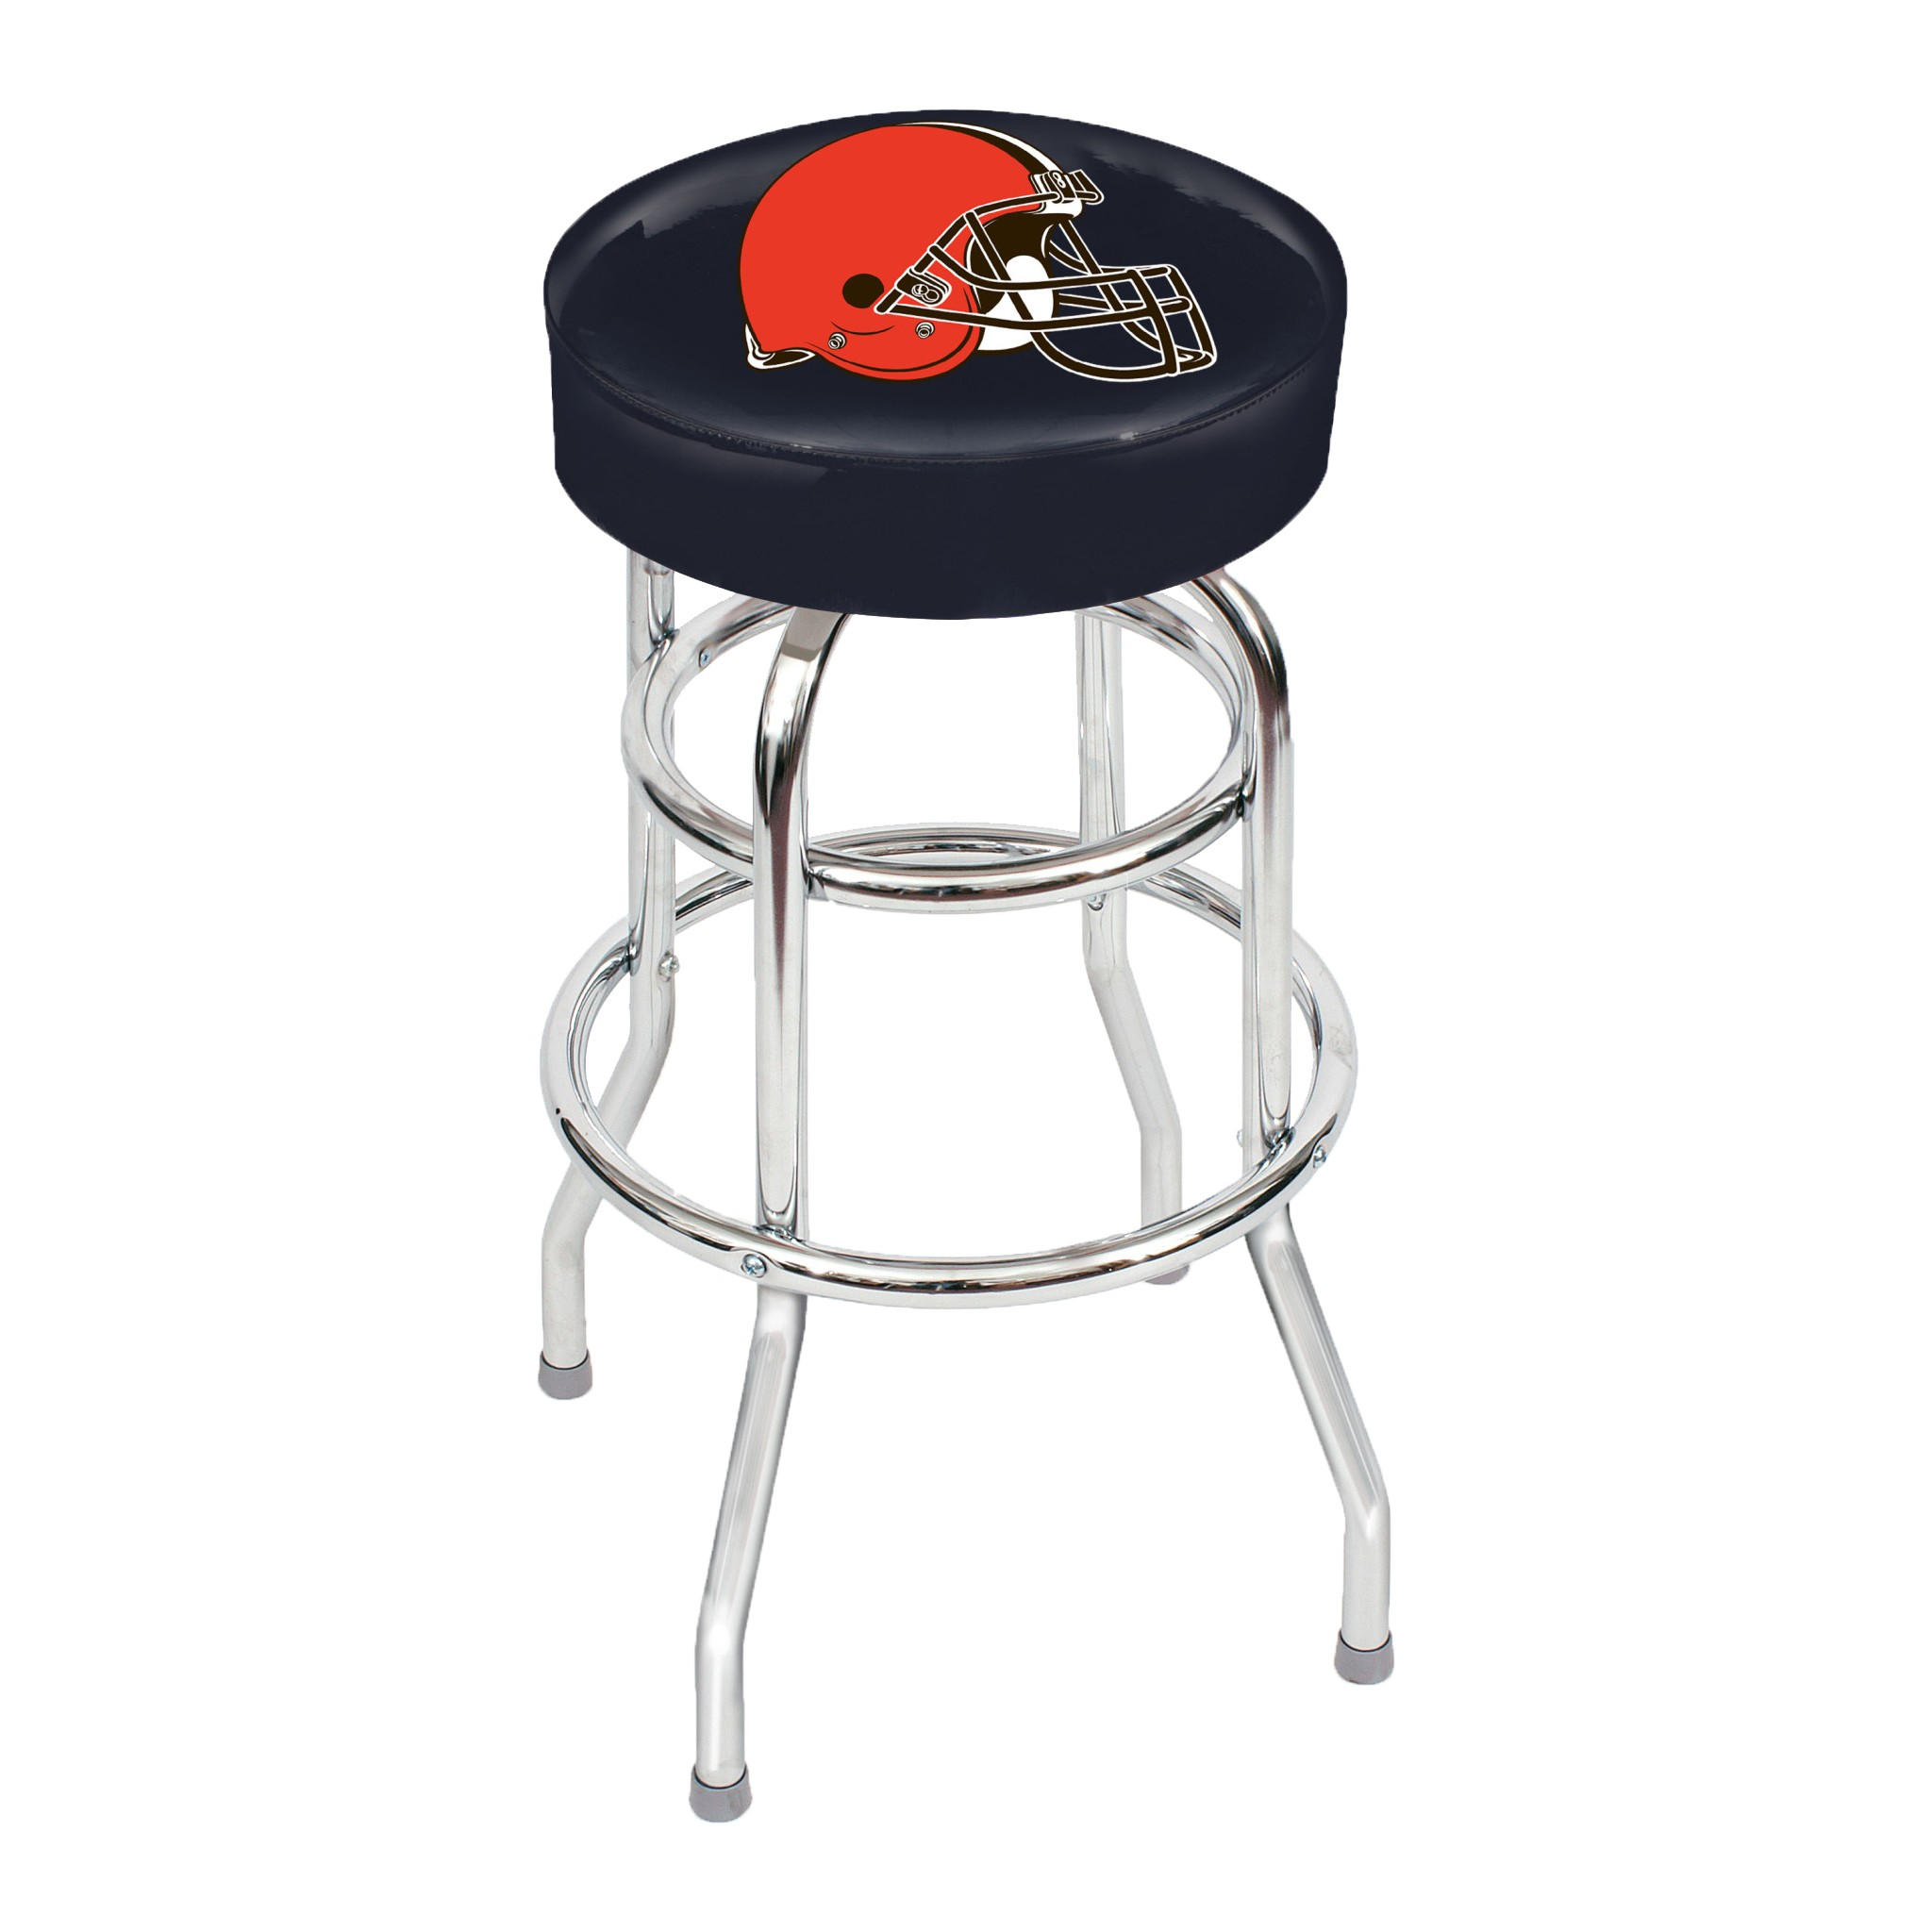 "CLEVELAND BROWNS 30"" BAR STOOL"